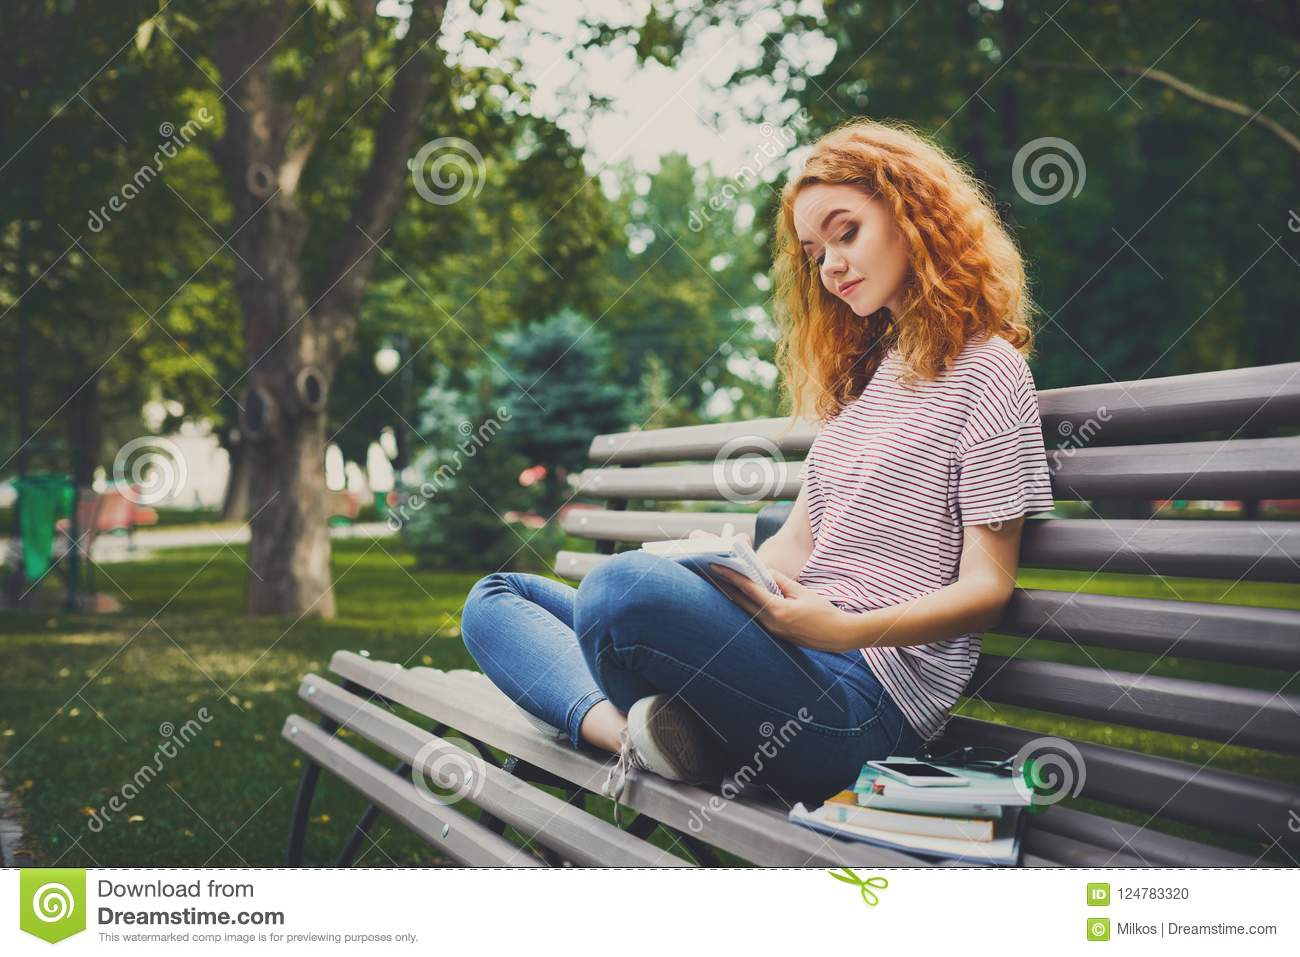 Redhead on bench speaking, you